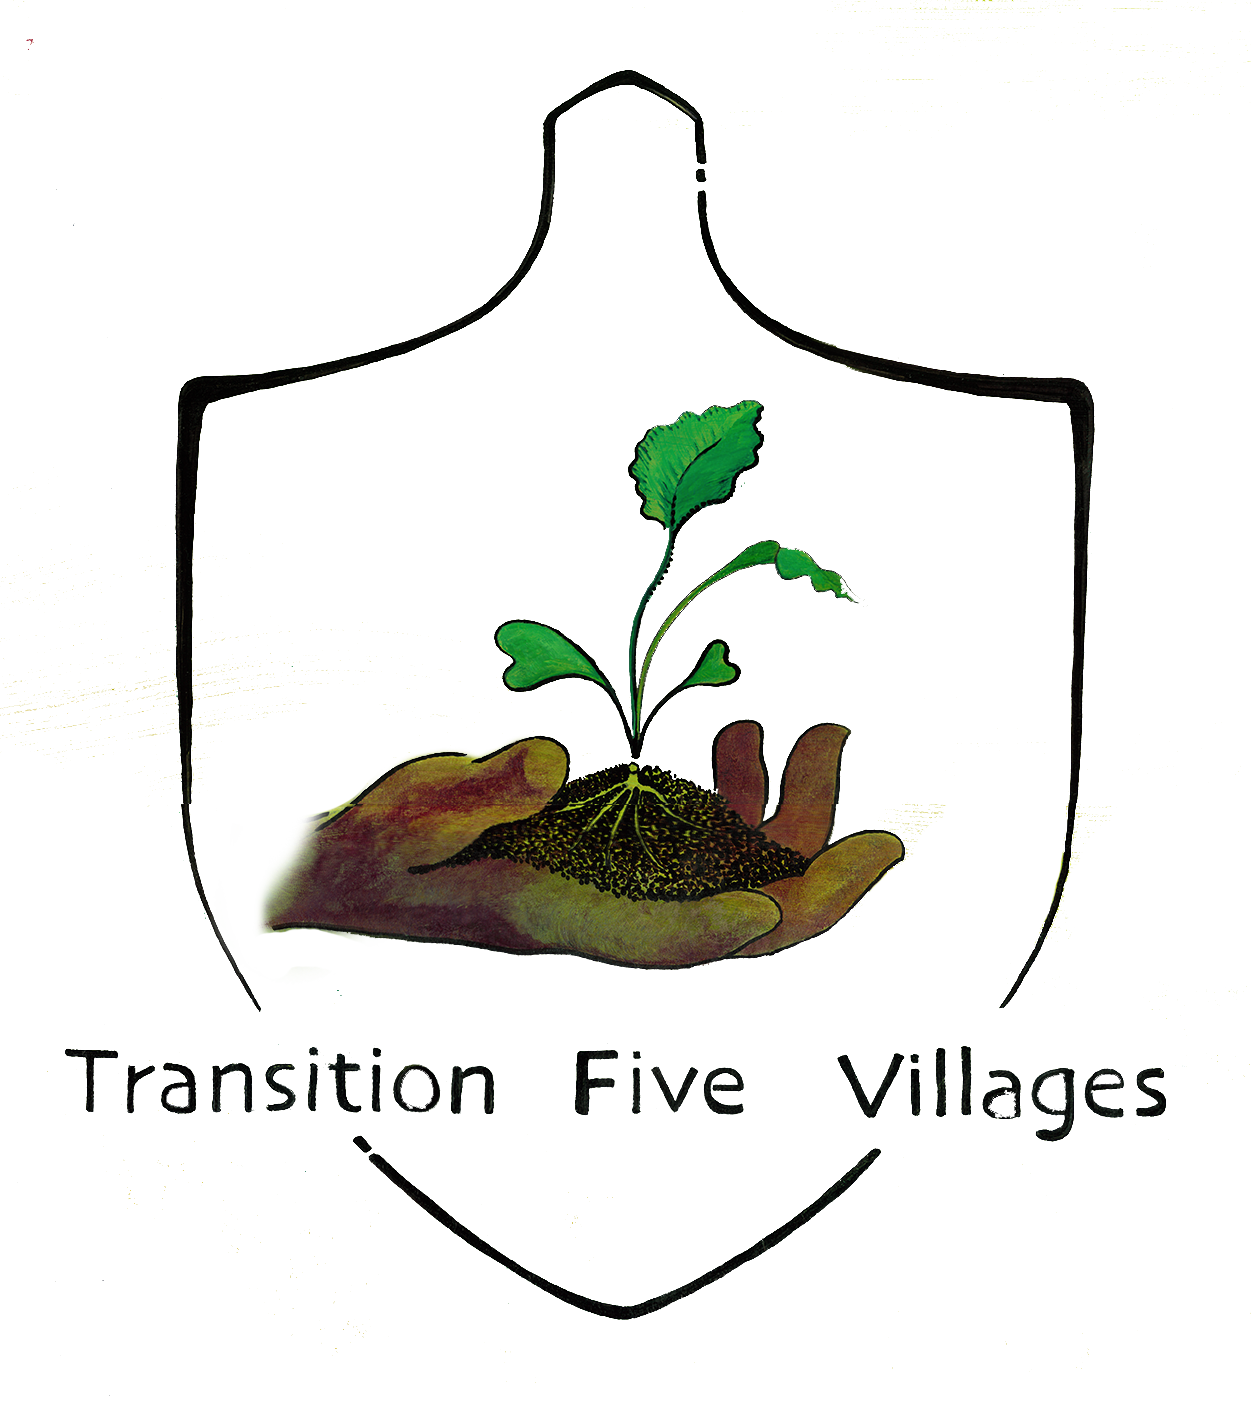 Transition Five Villages small logo.png